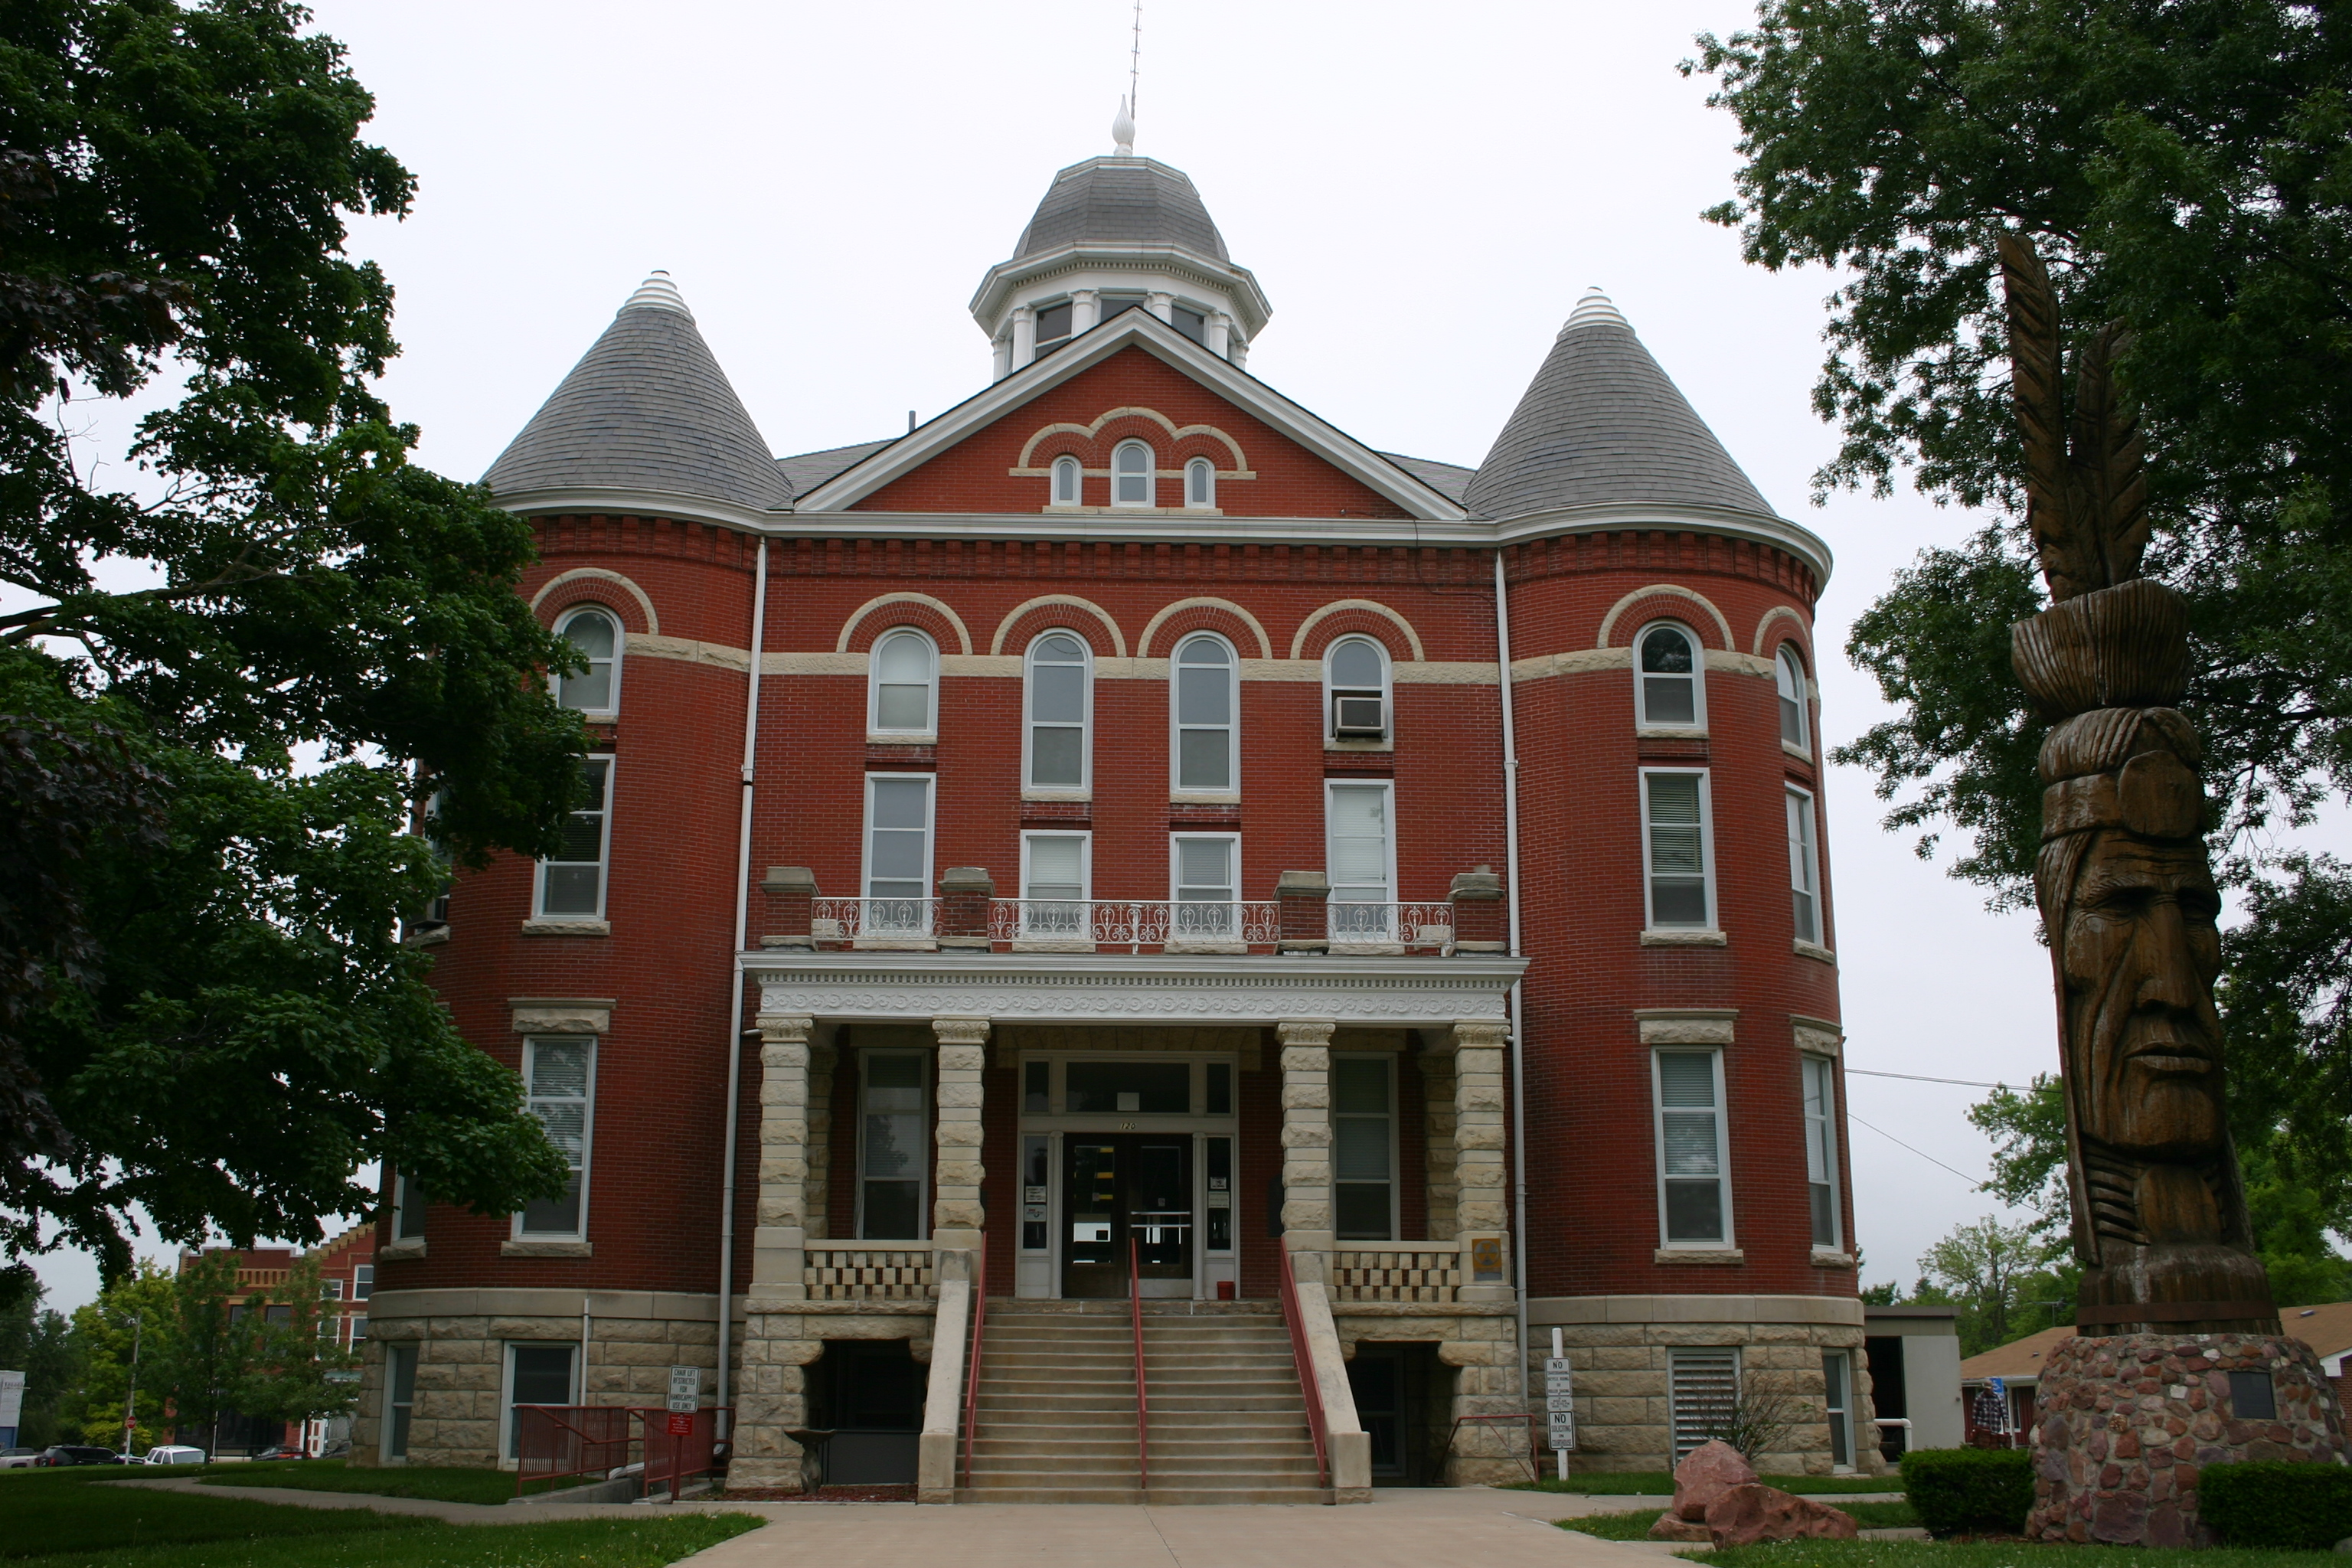 Doniphan County Courthouse